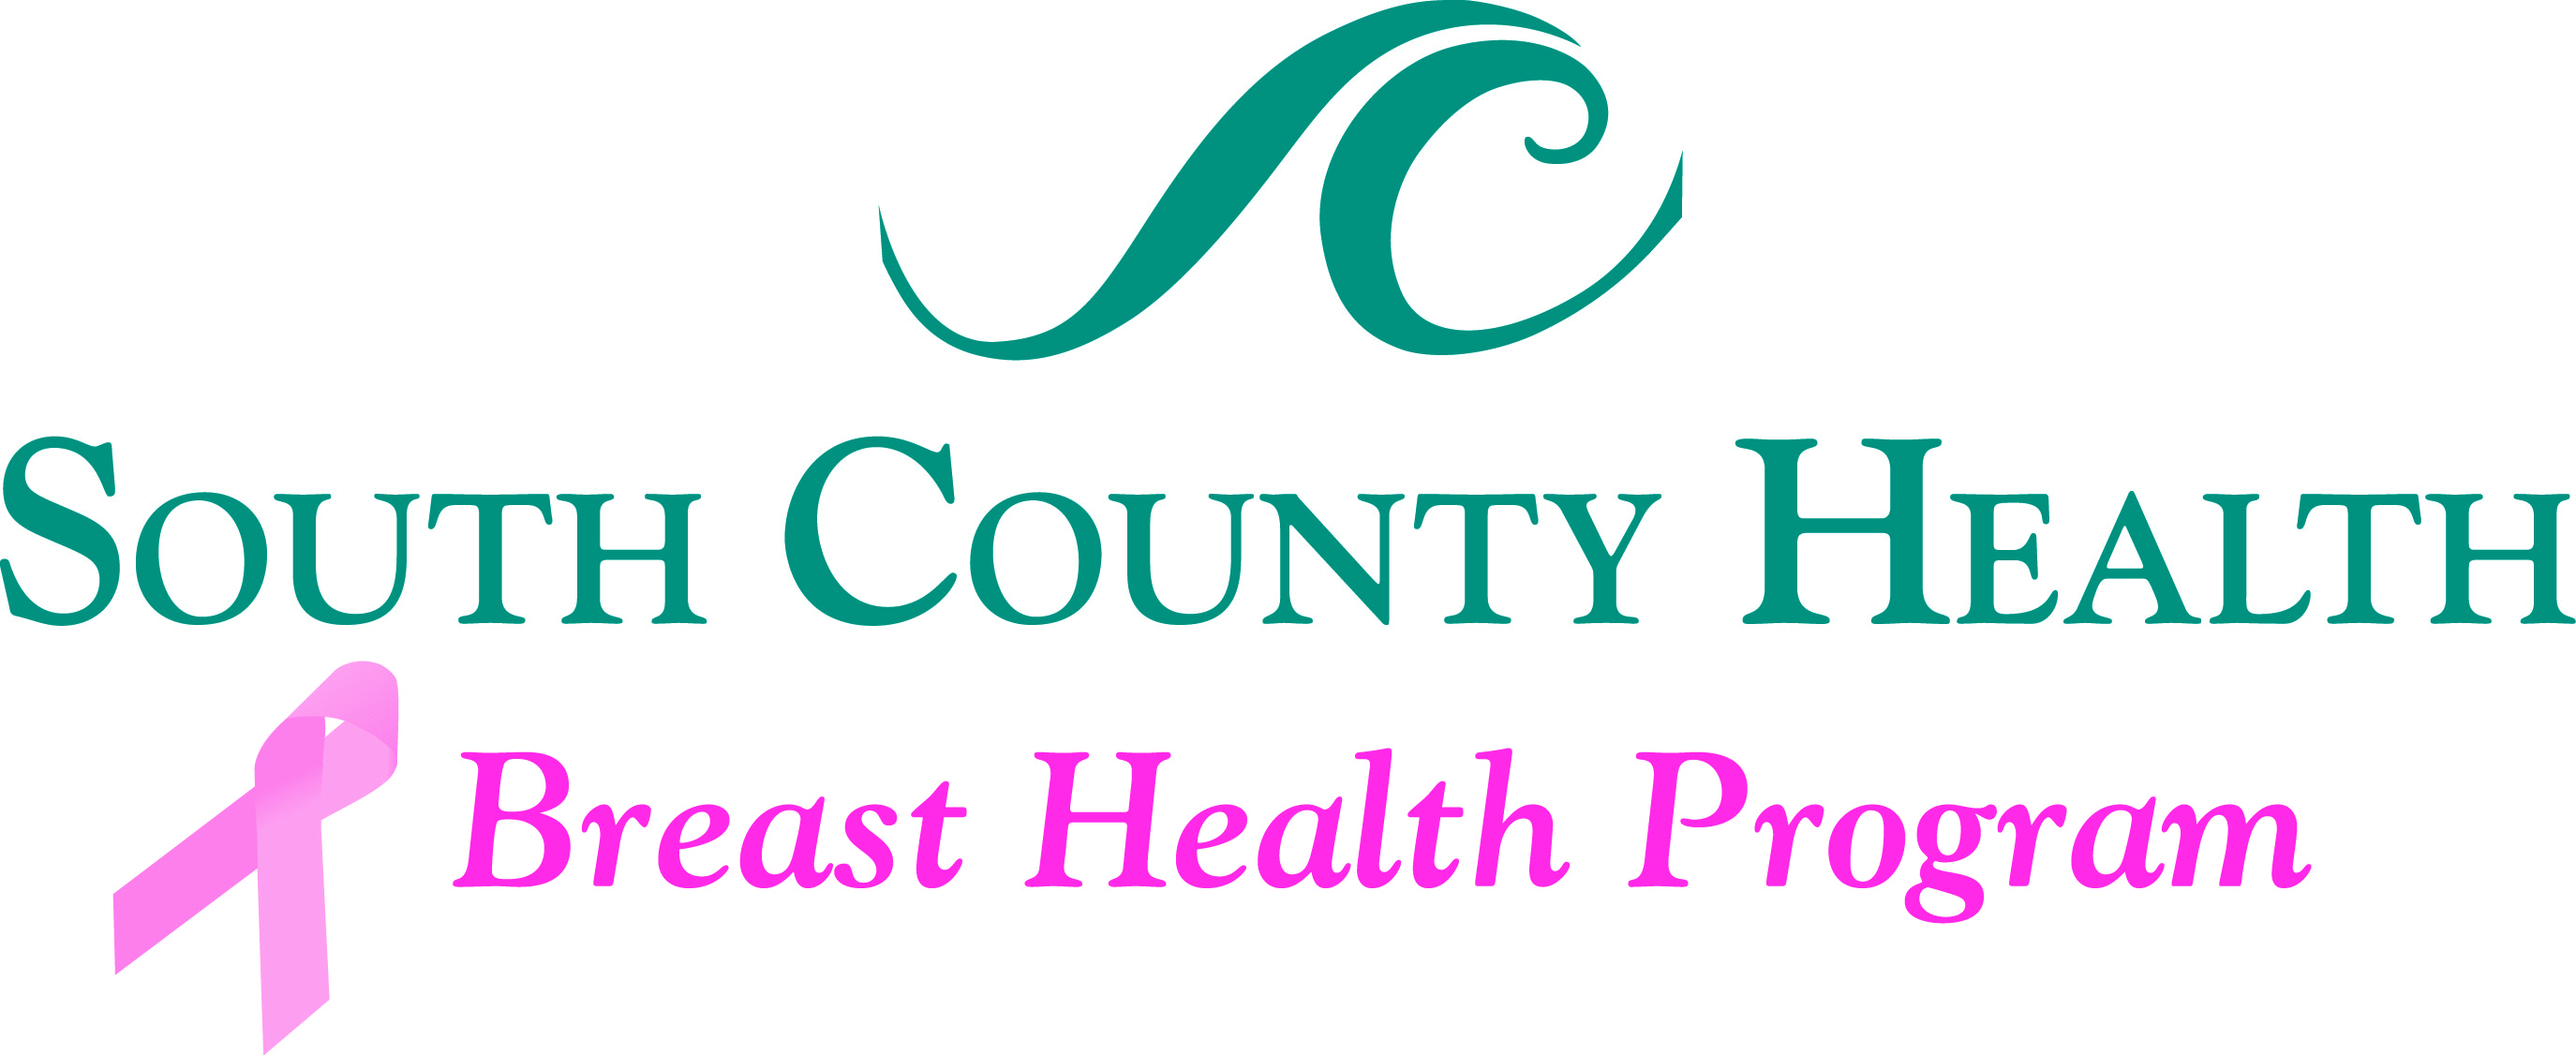 South County Breast Health